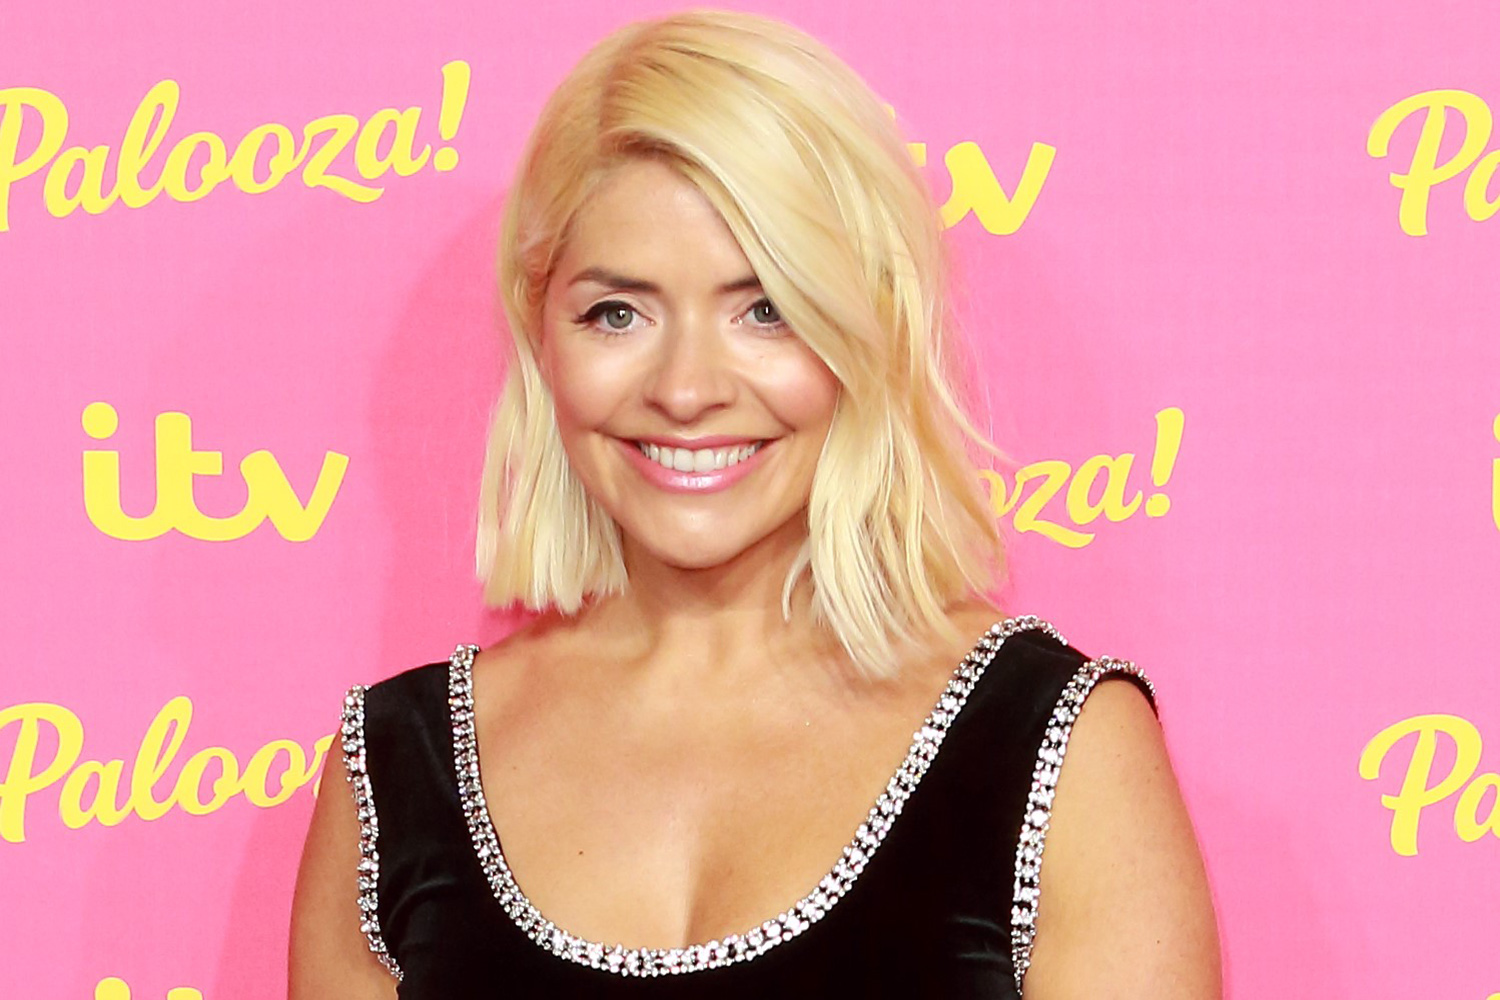 Holly Willoughby says she can't wait to cuddle mum again as she shares sweet birthday tribute